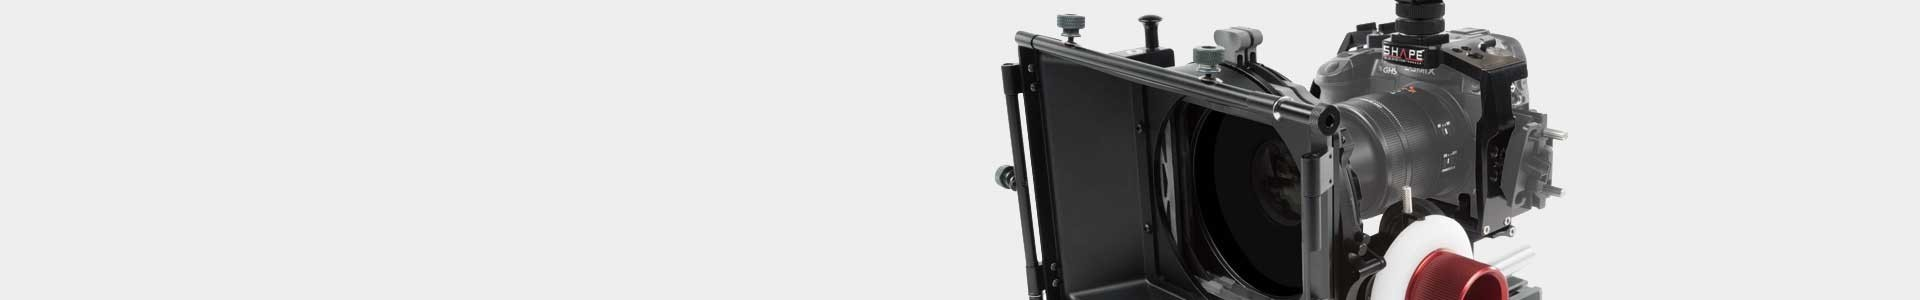 Professional accessories for DSLR cameras - Avacab